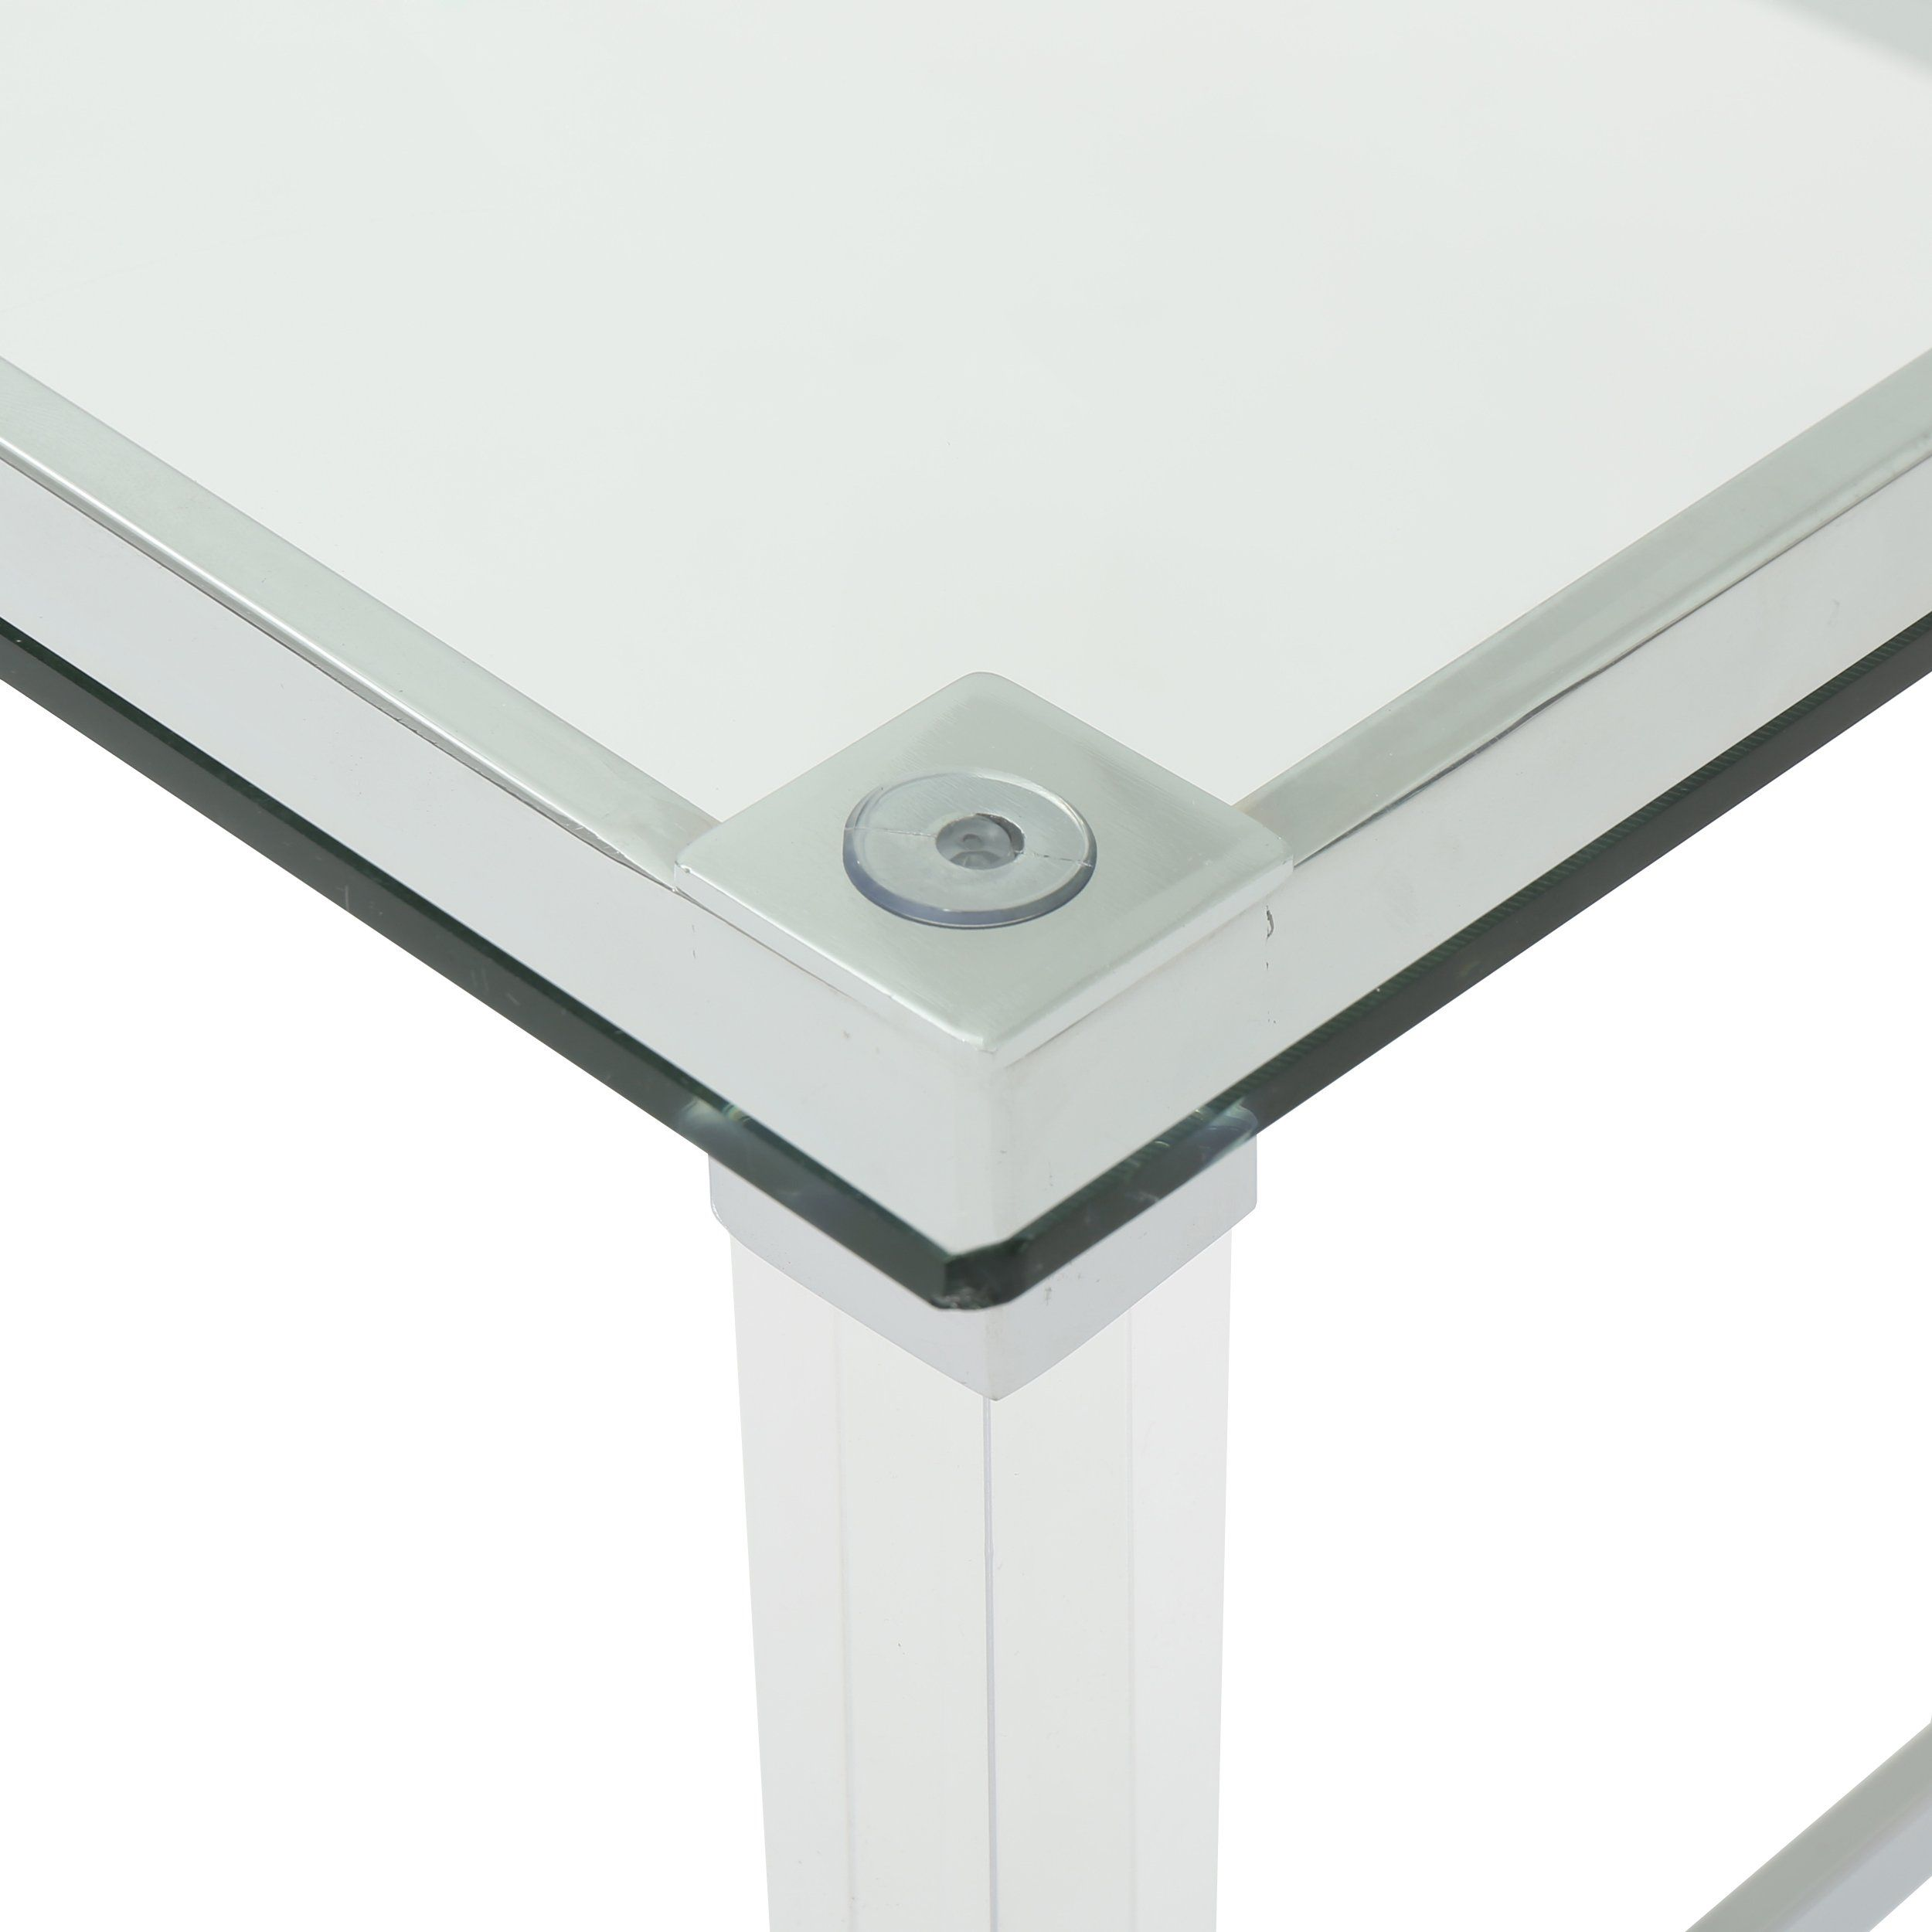 Bayor Modern Tempered Glass Coffee Table With Acrylic And Iron Accents Visit The Picture Web Link Even Mo In 2020 Coffee Table Rectangular Coffee Table Iron Accents [ 2500 x 2500 Pixel ]